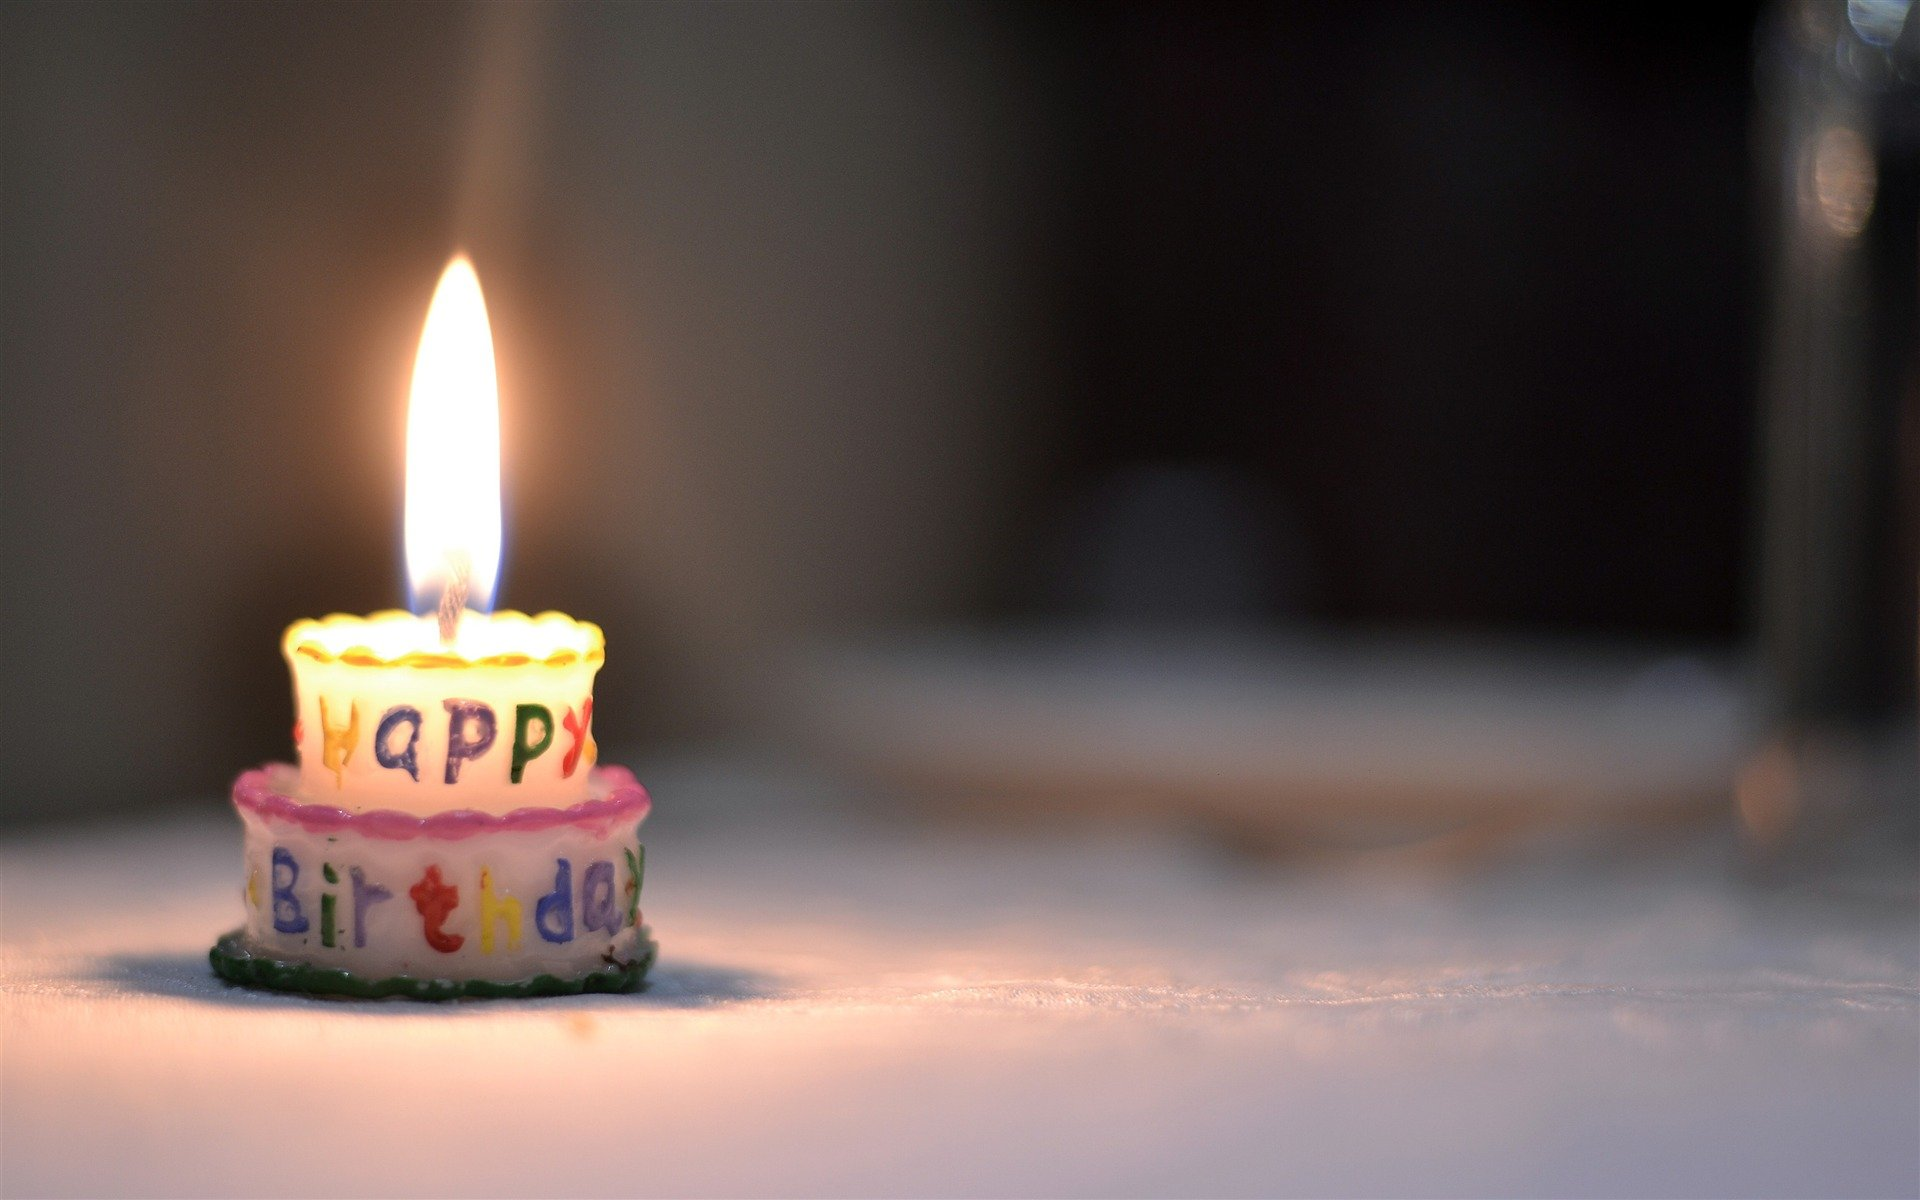 Happy Birthday cake candle flame Wallpaper 1920x1200